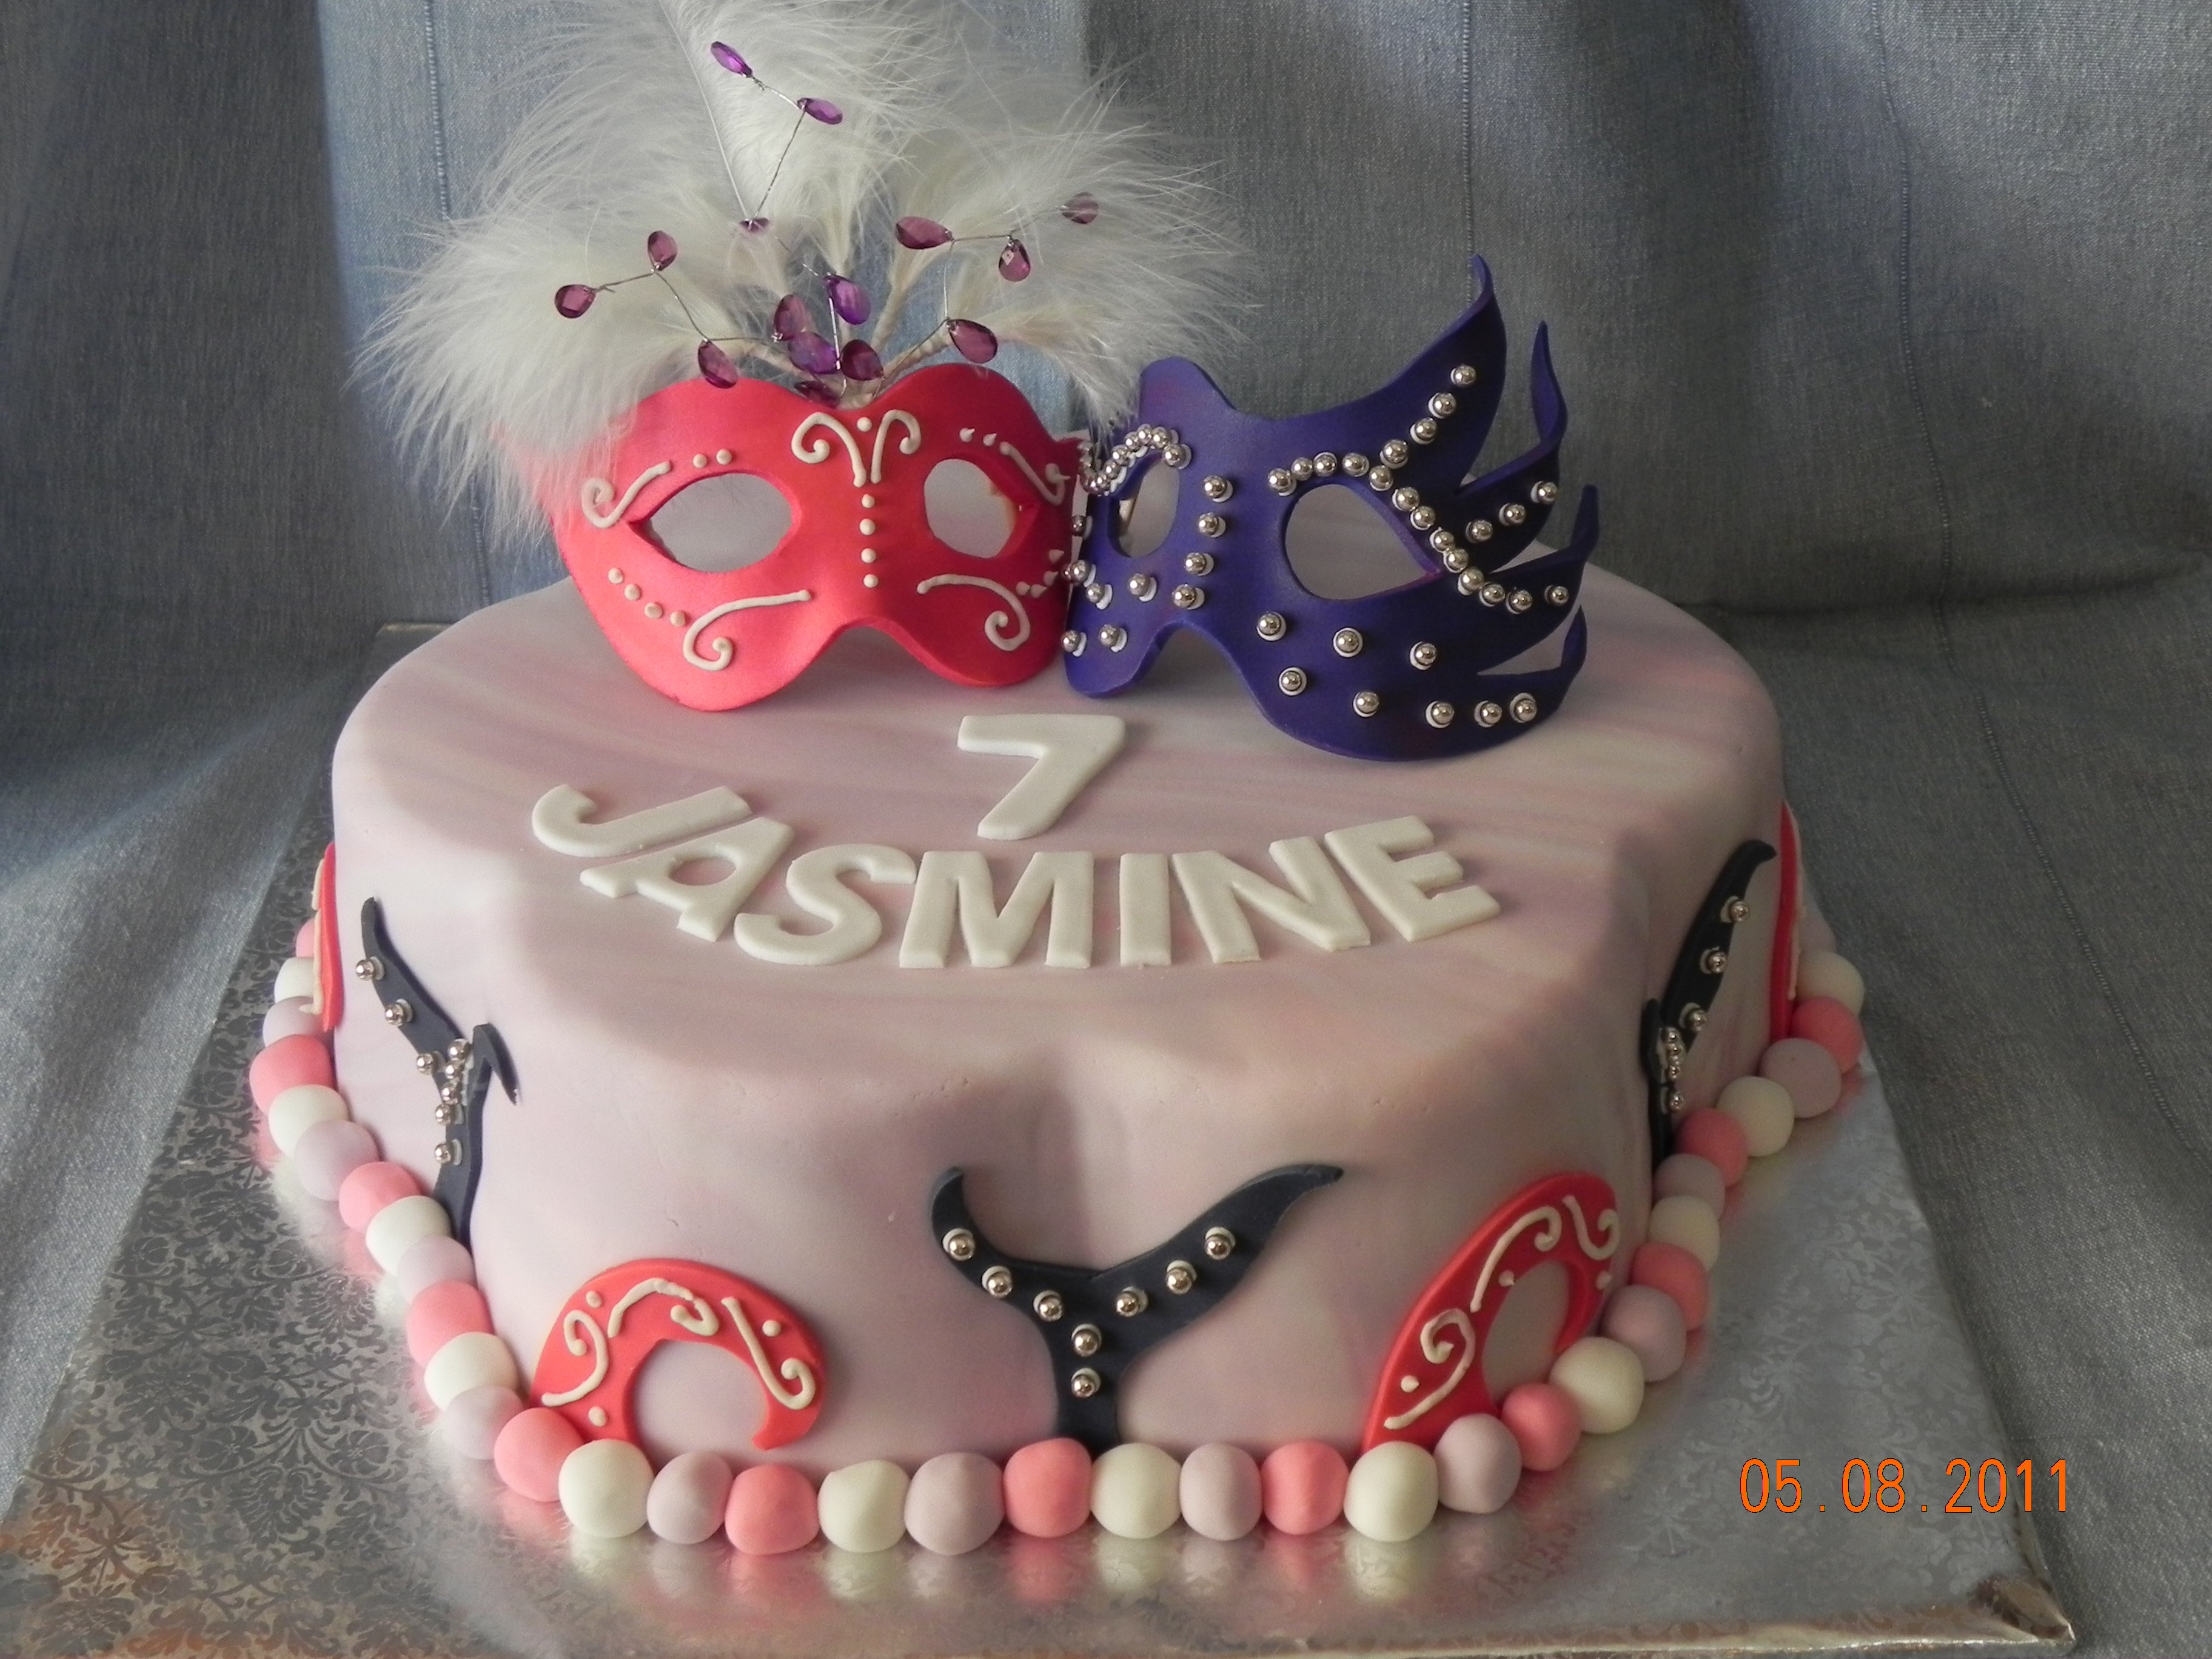 Masquerade Birthday Cake Designs Gallery Birthday Cake With Candles